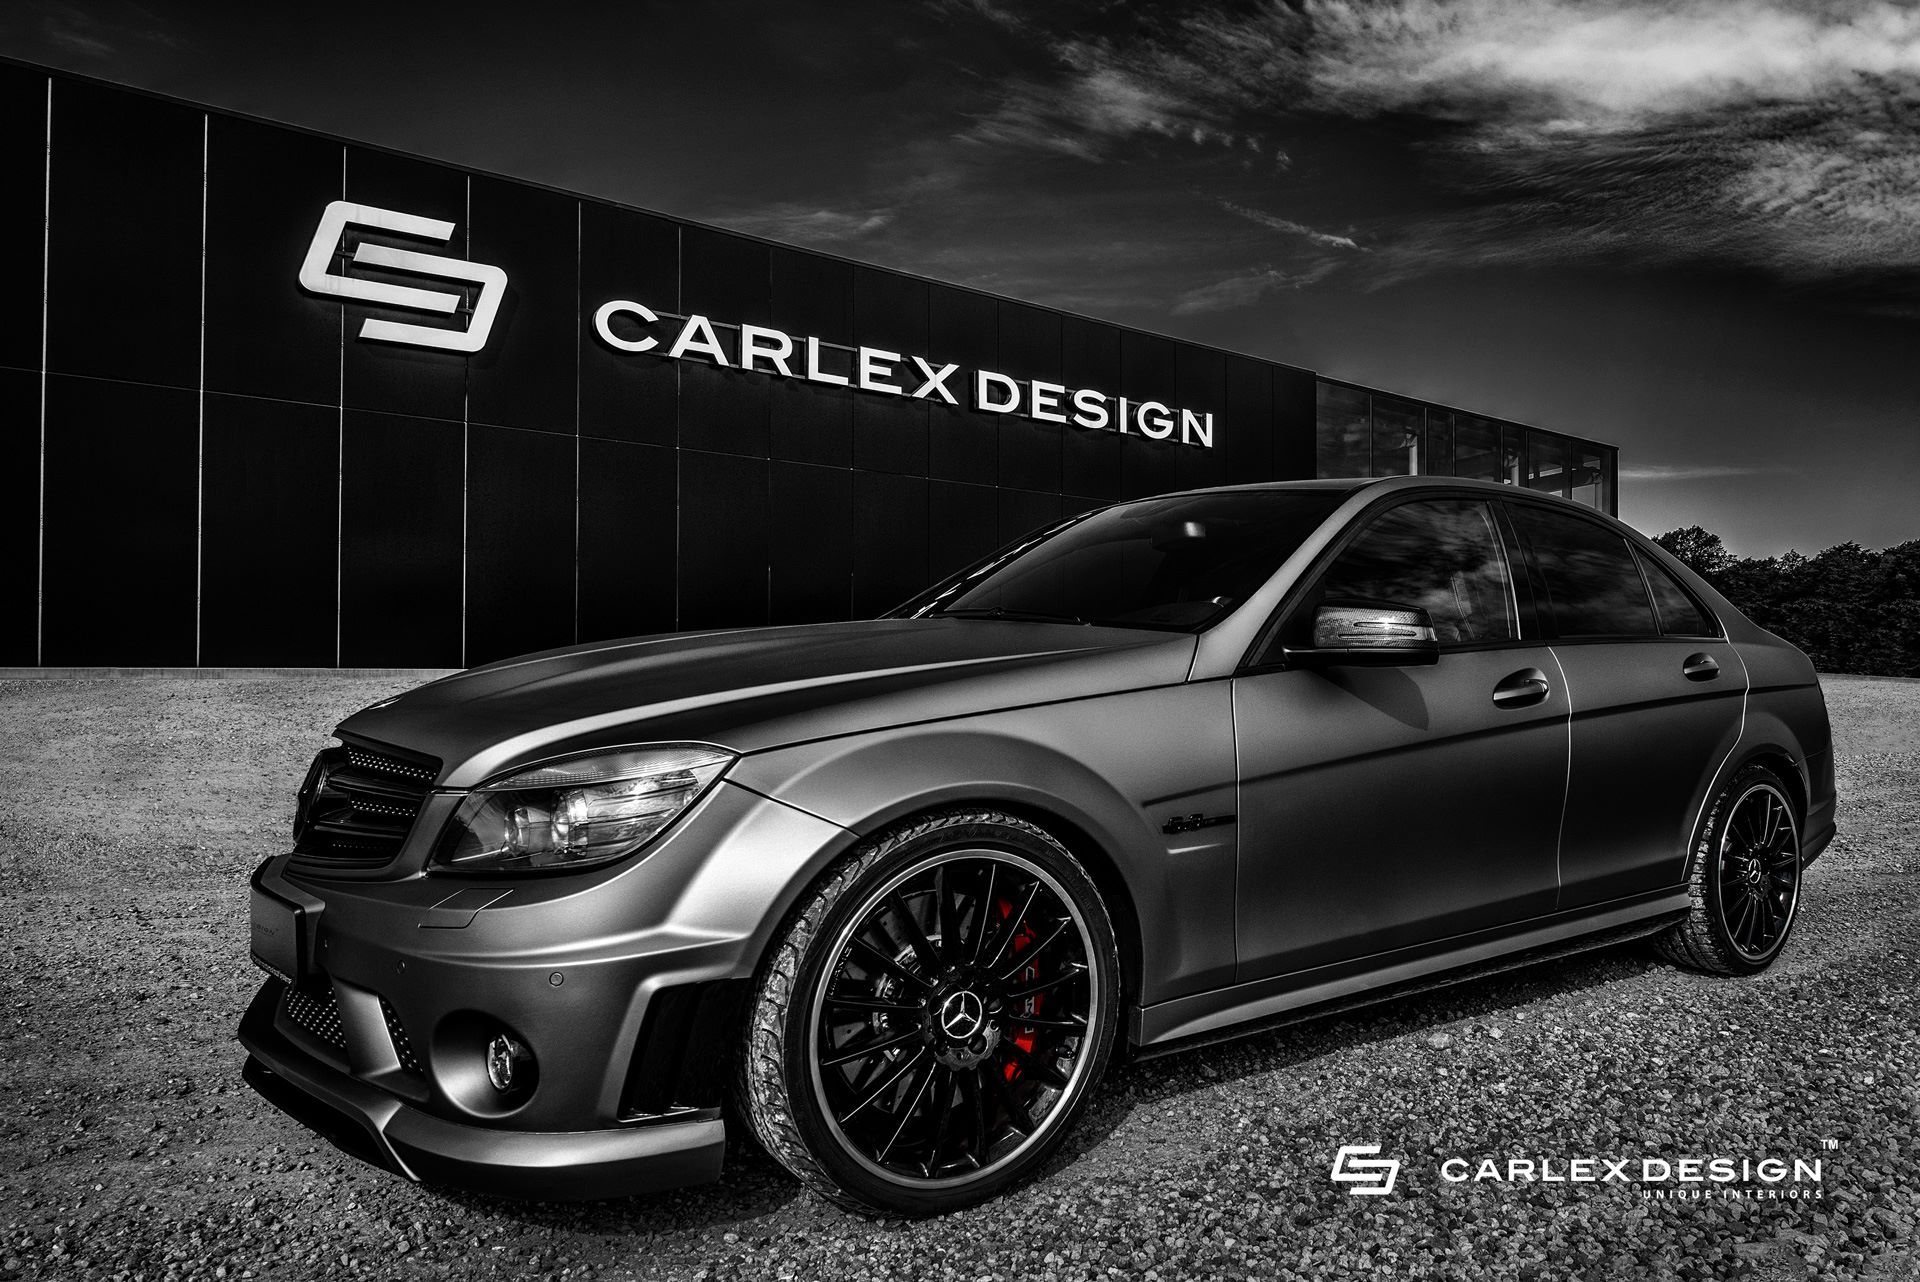 mercedes amg c63 gets tuned by carlex shows w204 generation is still cool autoevolution. Black Bedroom Furniture Sets. Home Design Ideas